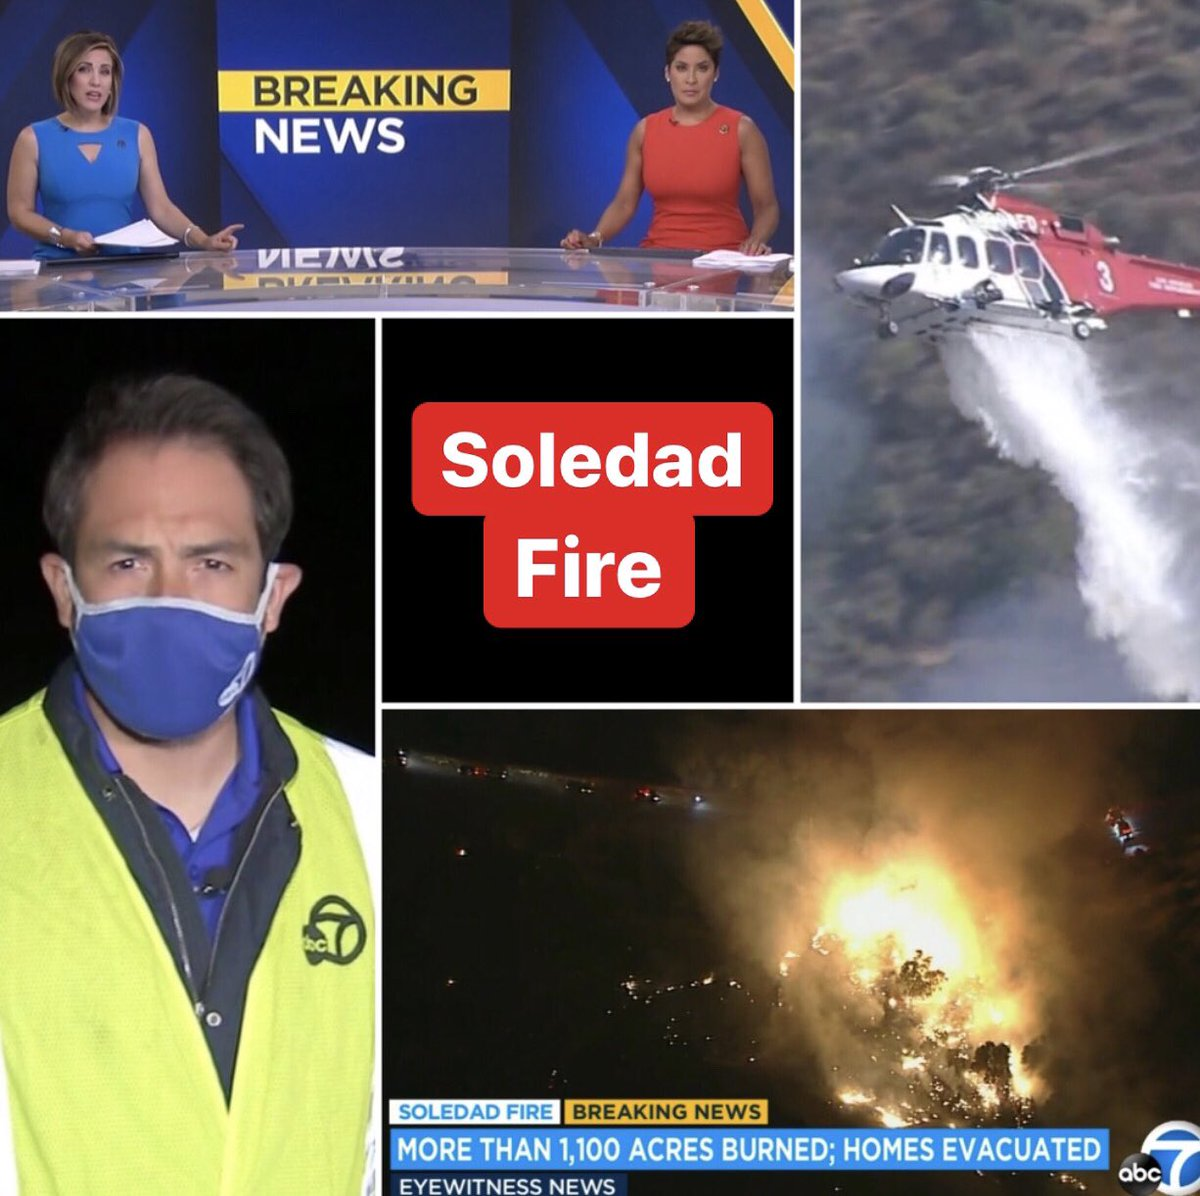 #DEVELOPING on @ABC7: @abc7marccr is LIVE at the #SoledadFire near #AguaDulce with the latest on the firefight. 1,100 acres have burned. Several homes remain evacuated. https://t.co/hIgBBFrH3a #wildfire #SoCal #Heat #weather #FireDanger #LACounty https://t.co/5jUoTi5zbQ